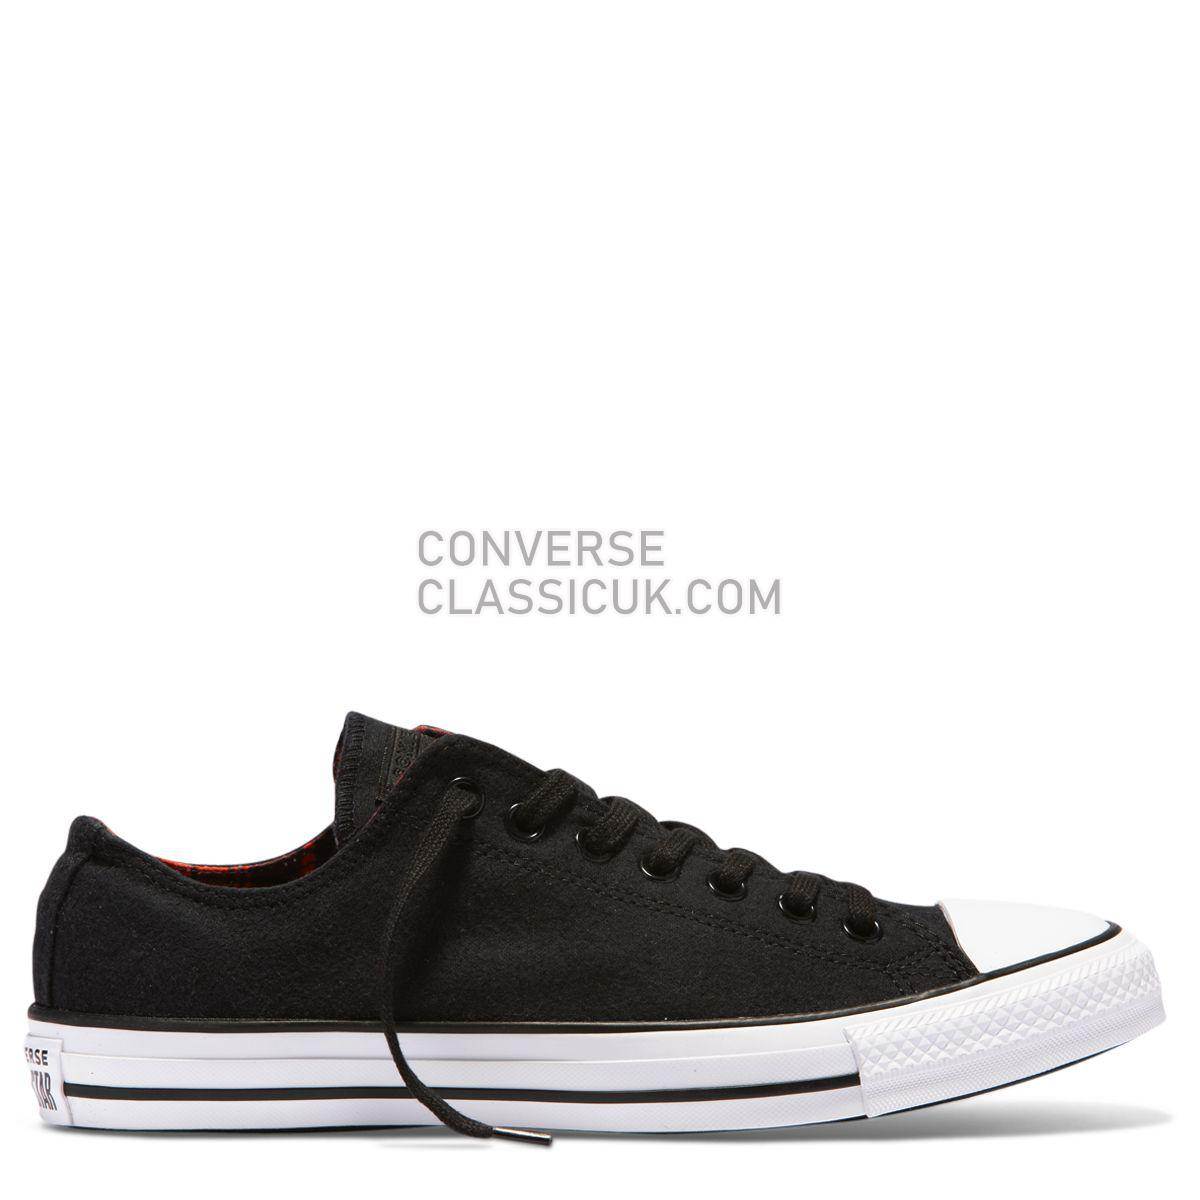 Converse Chuck Taylor All Star Plaid Low Top Black Mens Womens Unisex 162400 Black/Bright Poppy/Black Shoes